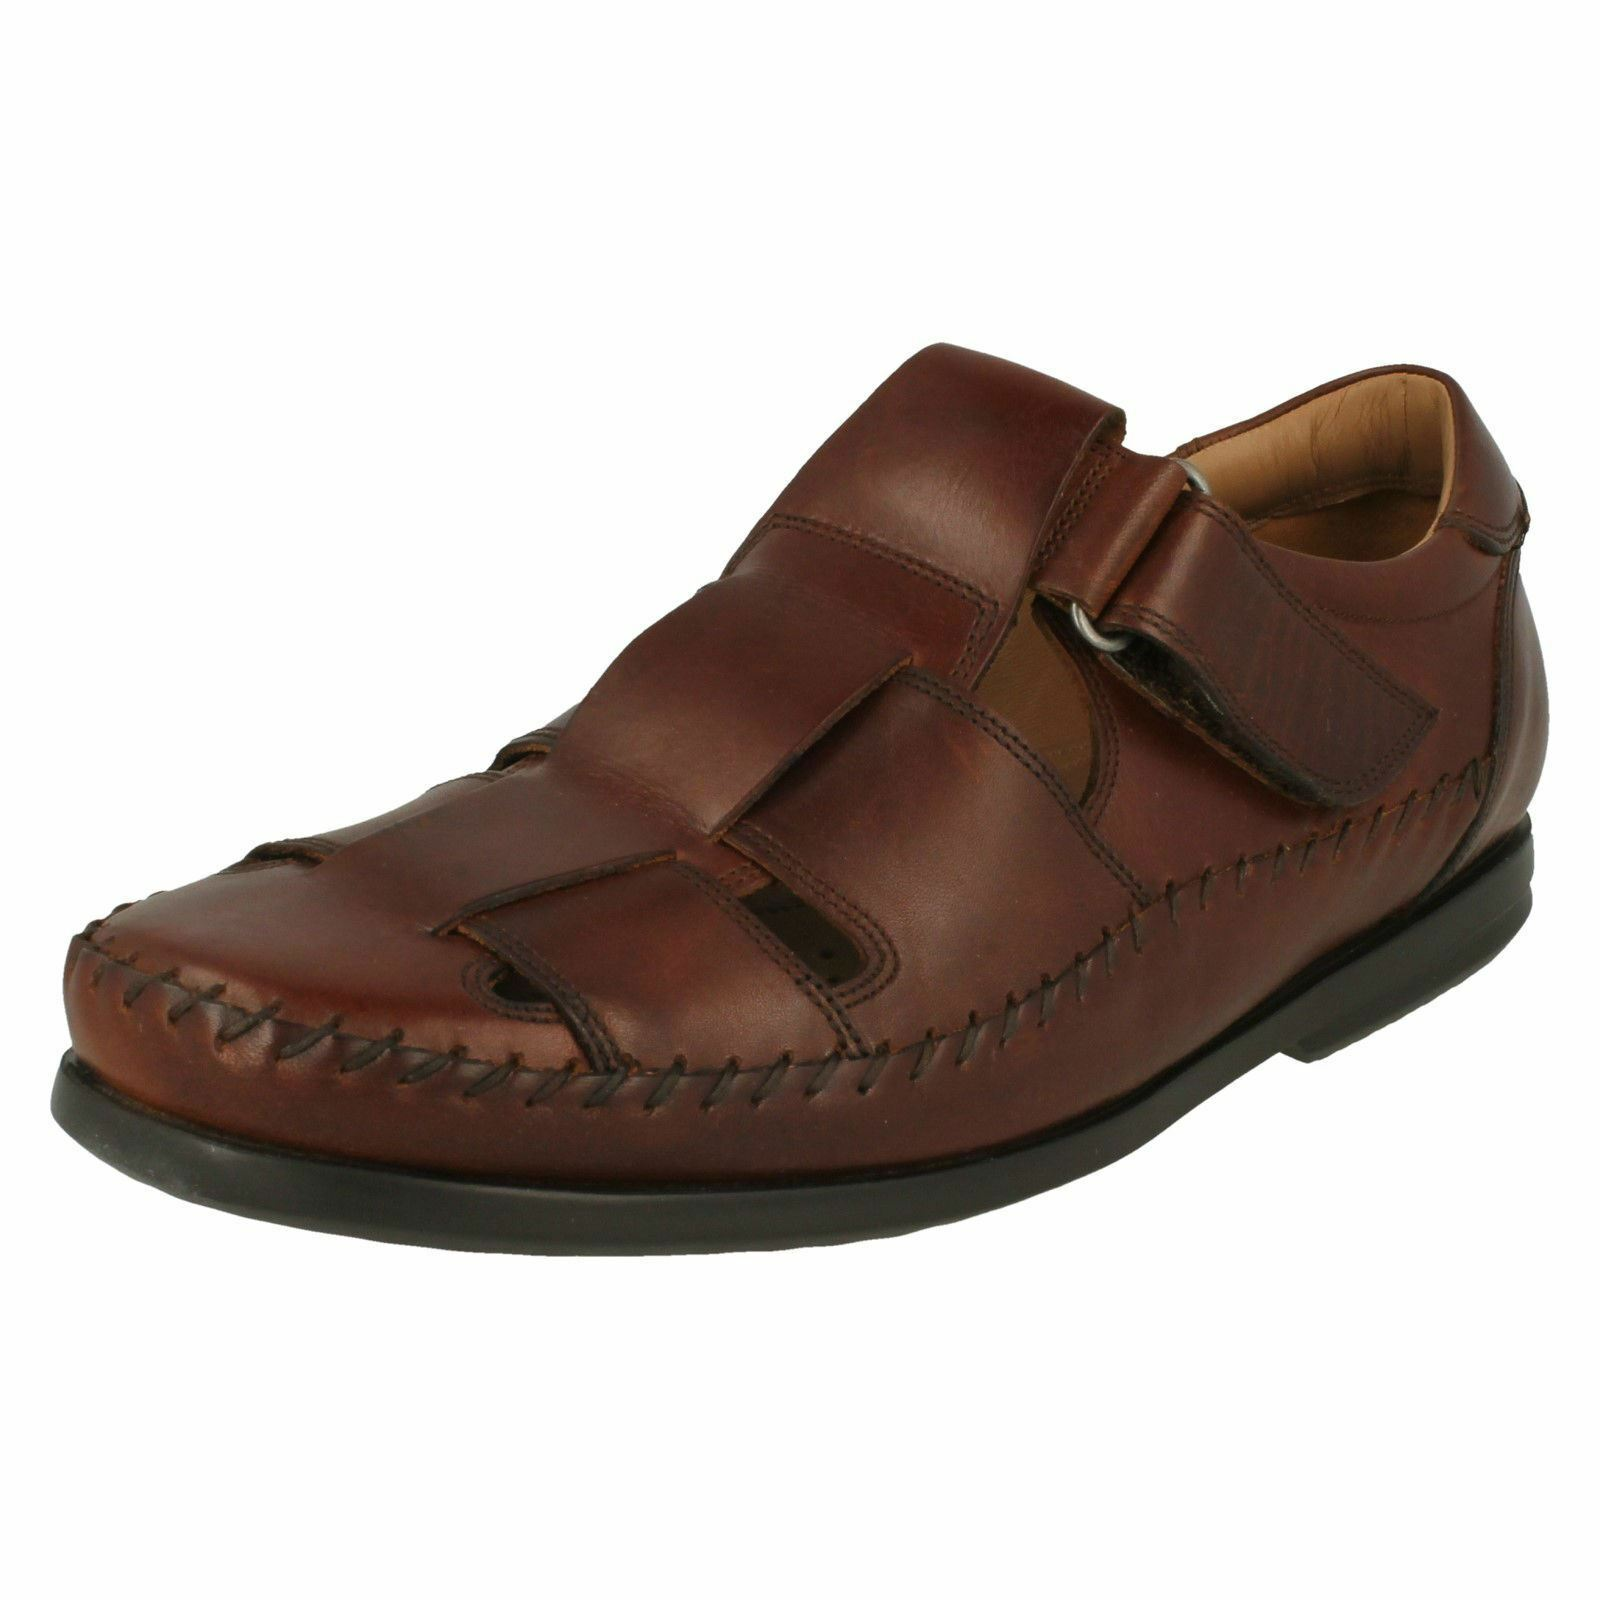 Mens Clarks Casual Strapped Sandals Un Gala Strap